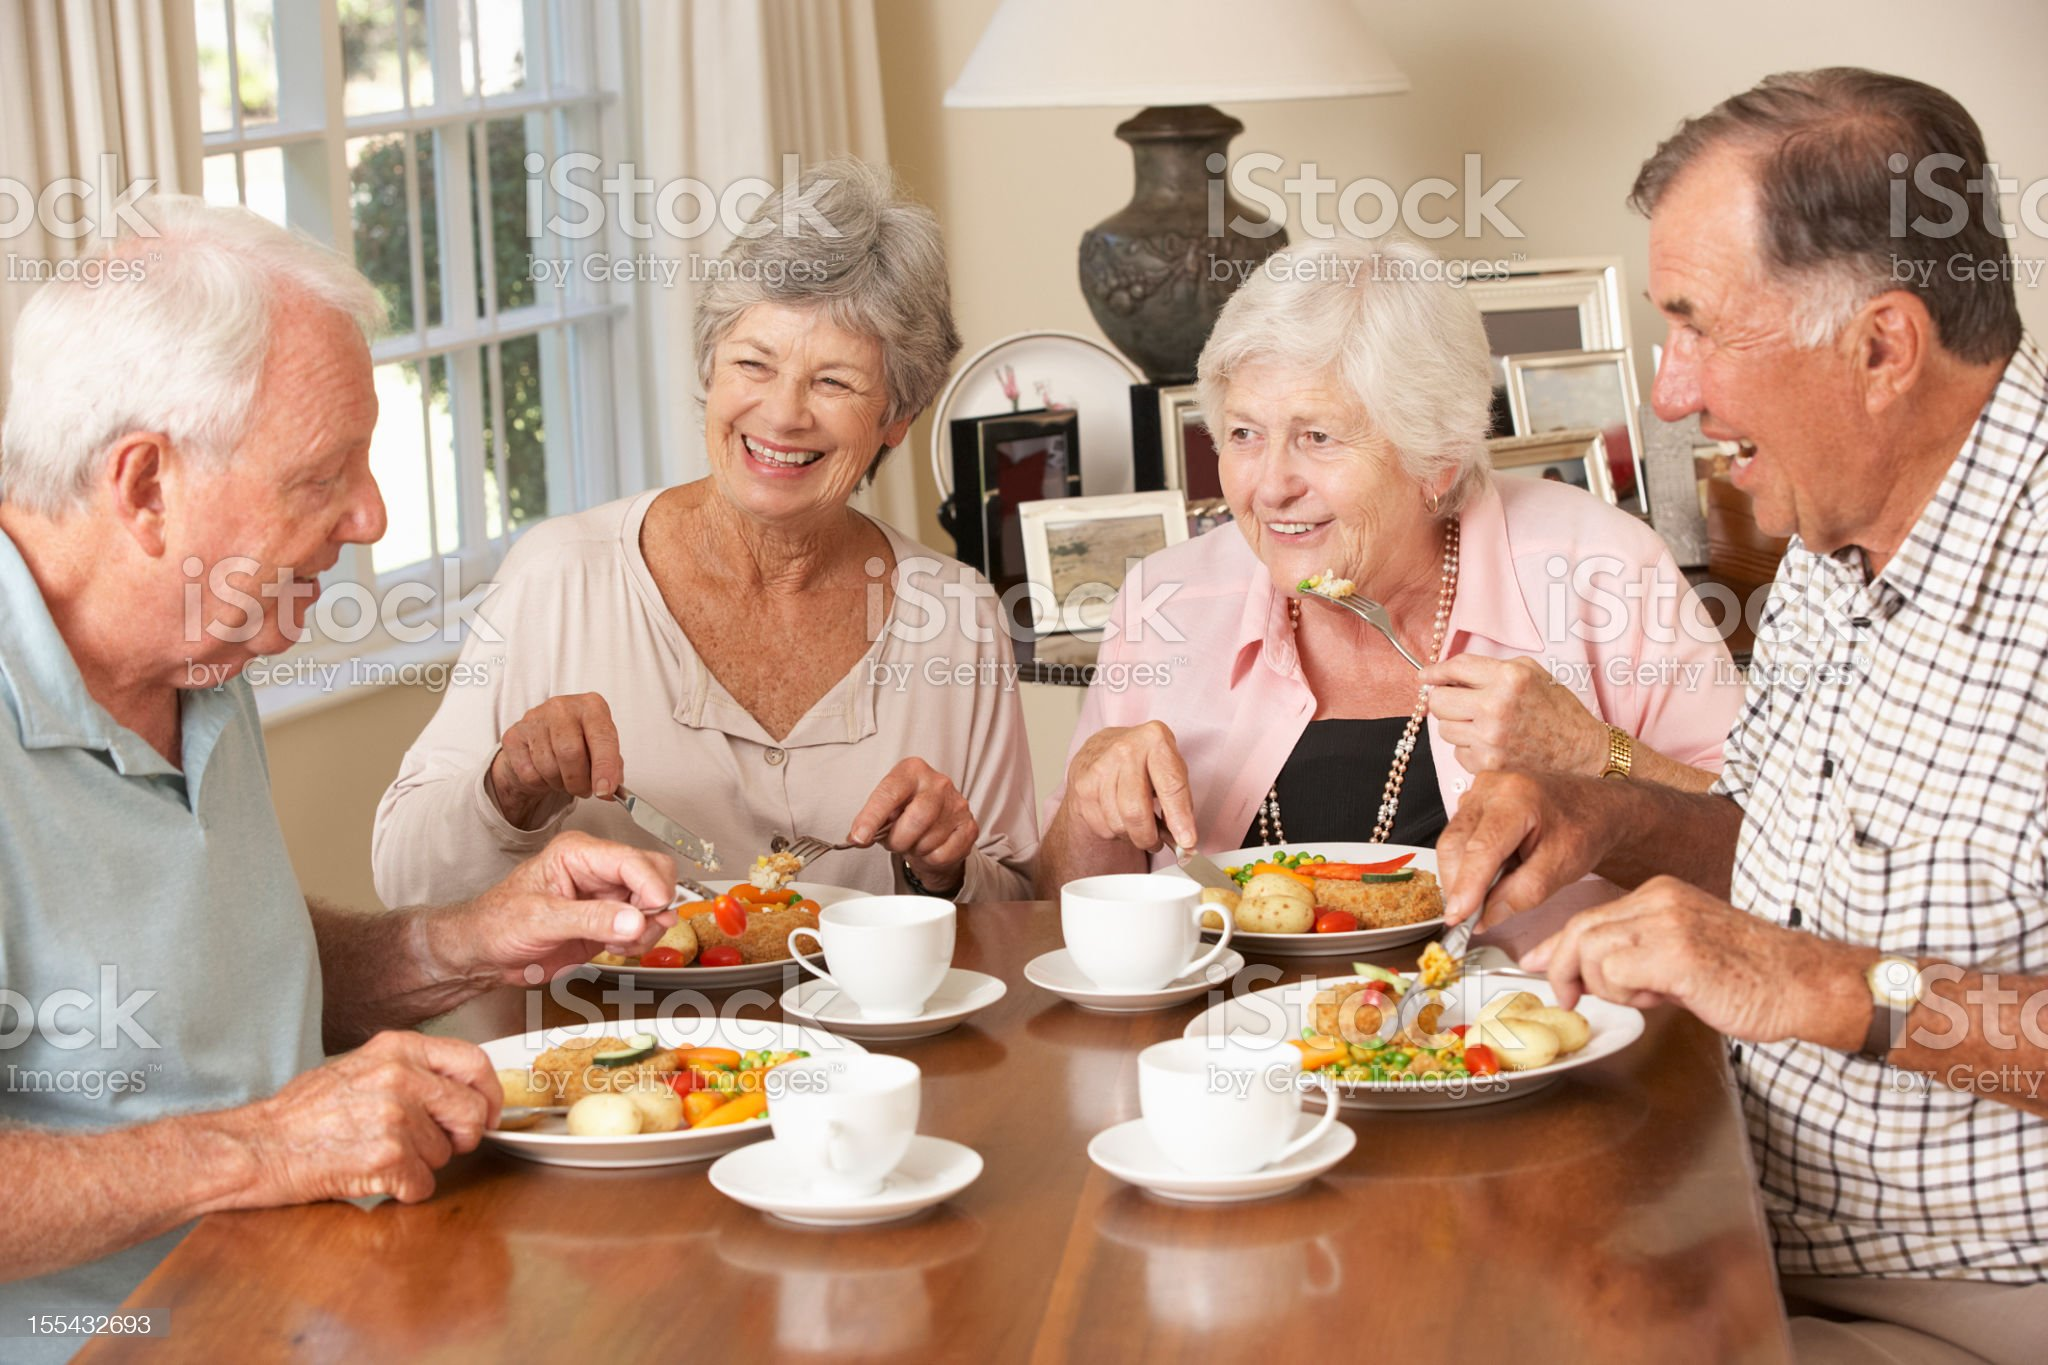 Group Of Senior Couples Enjoying Meal Together royalty-free stock photo